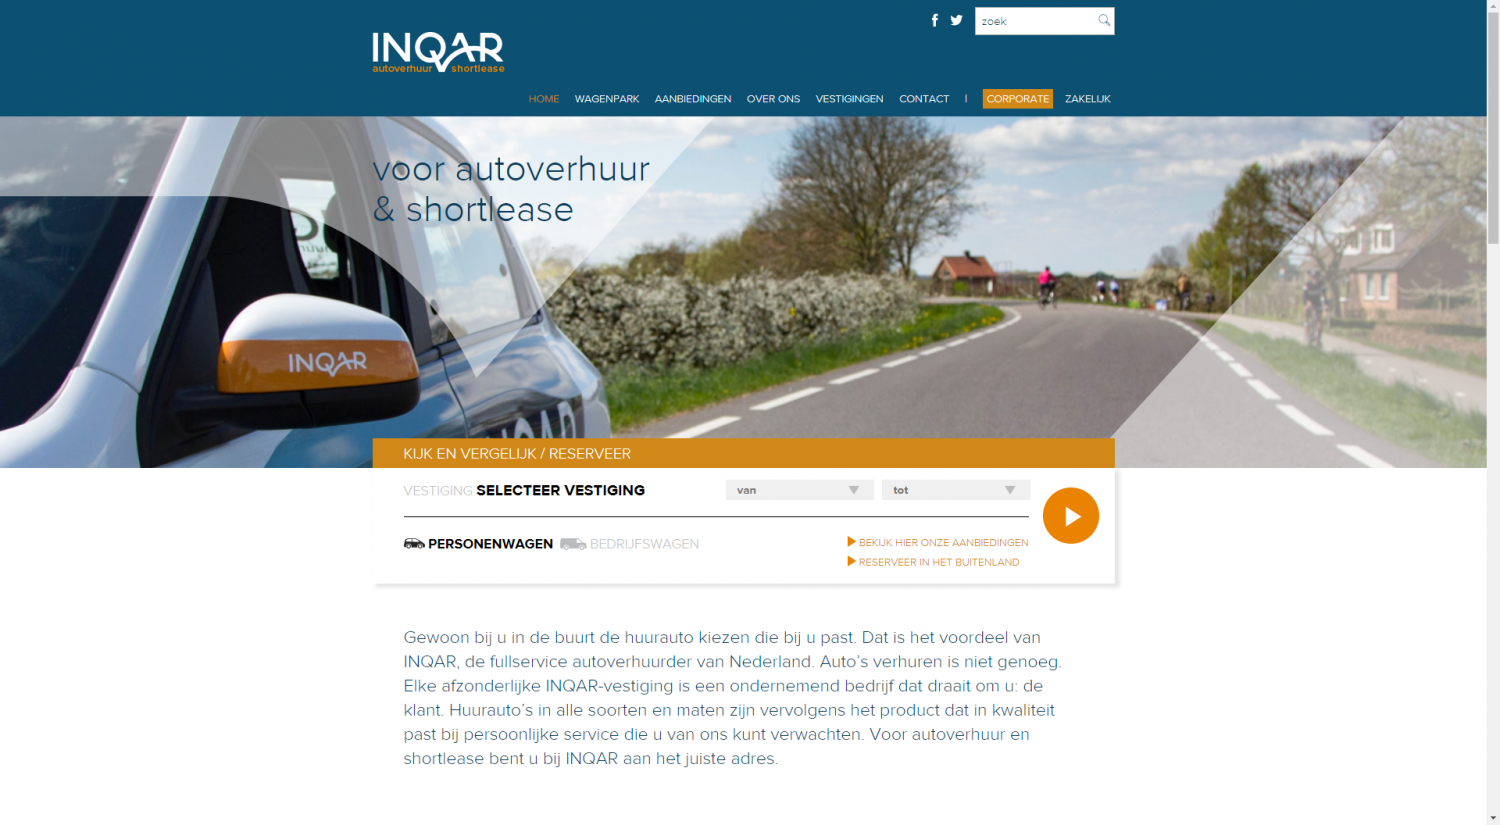 De vorige INQAR website